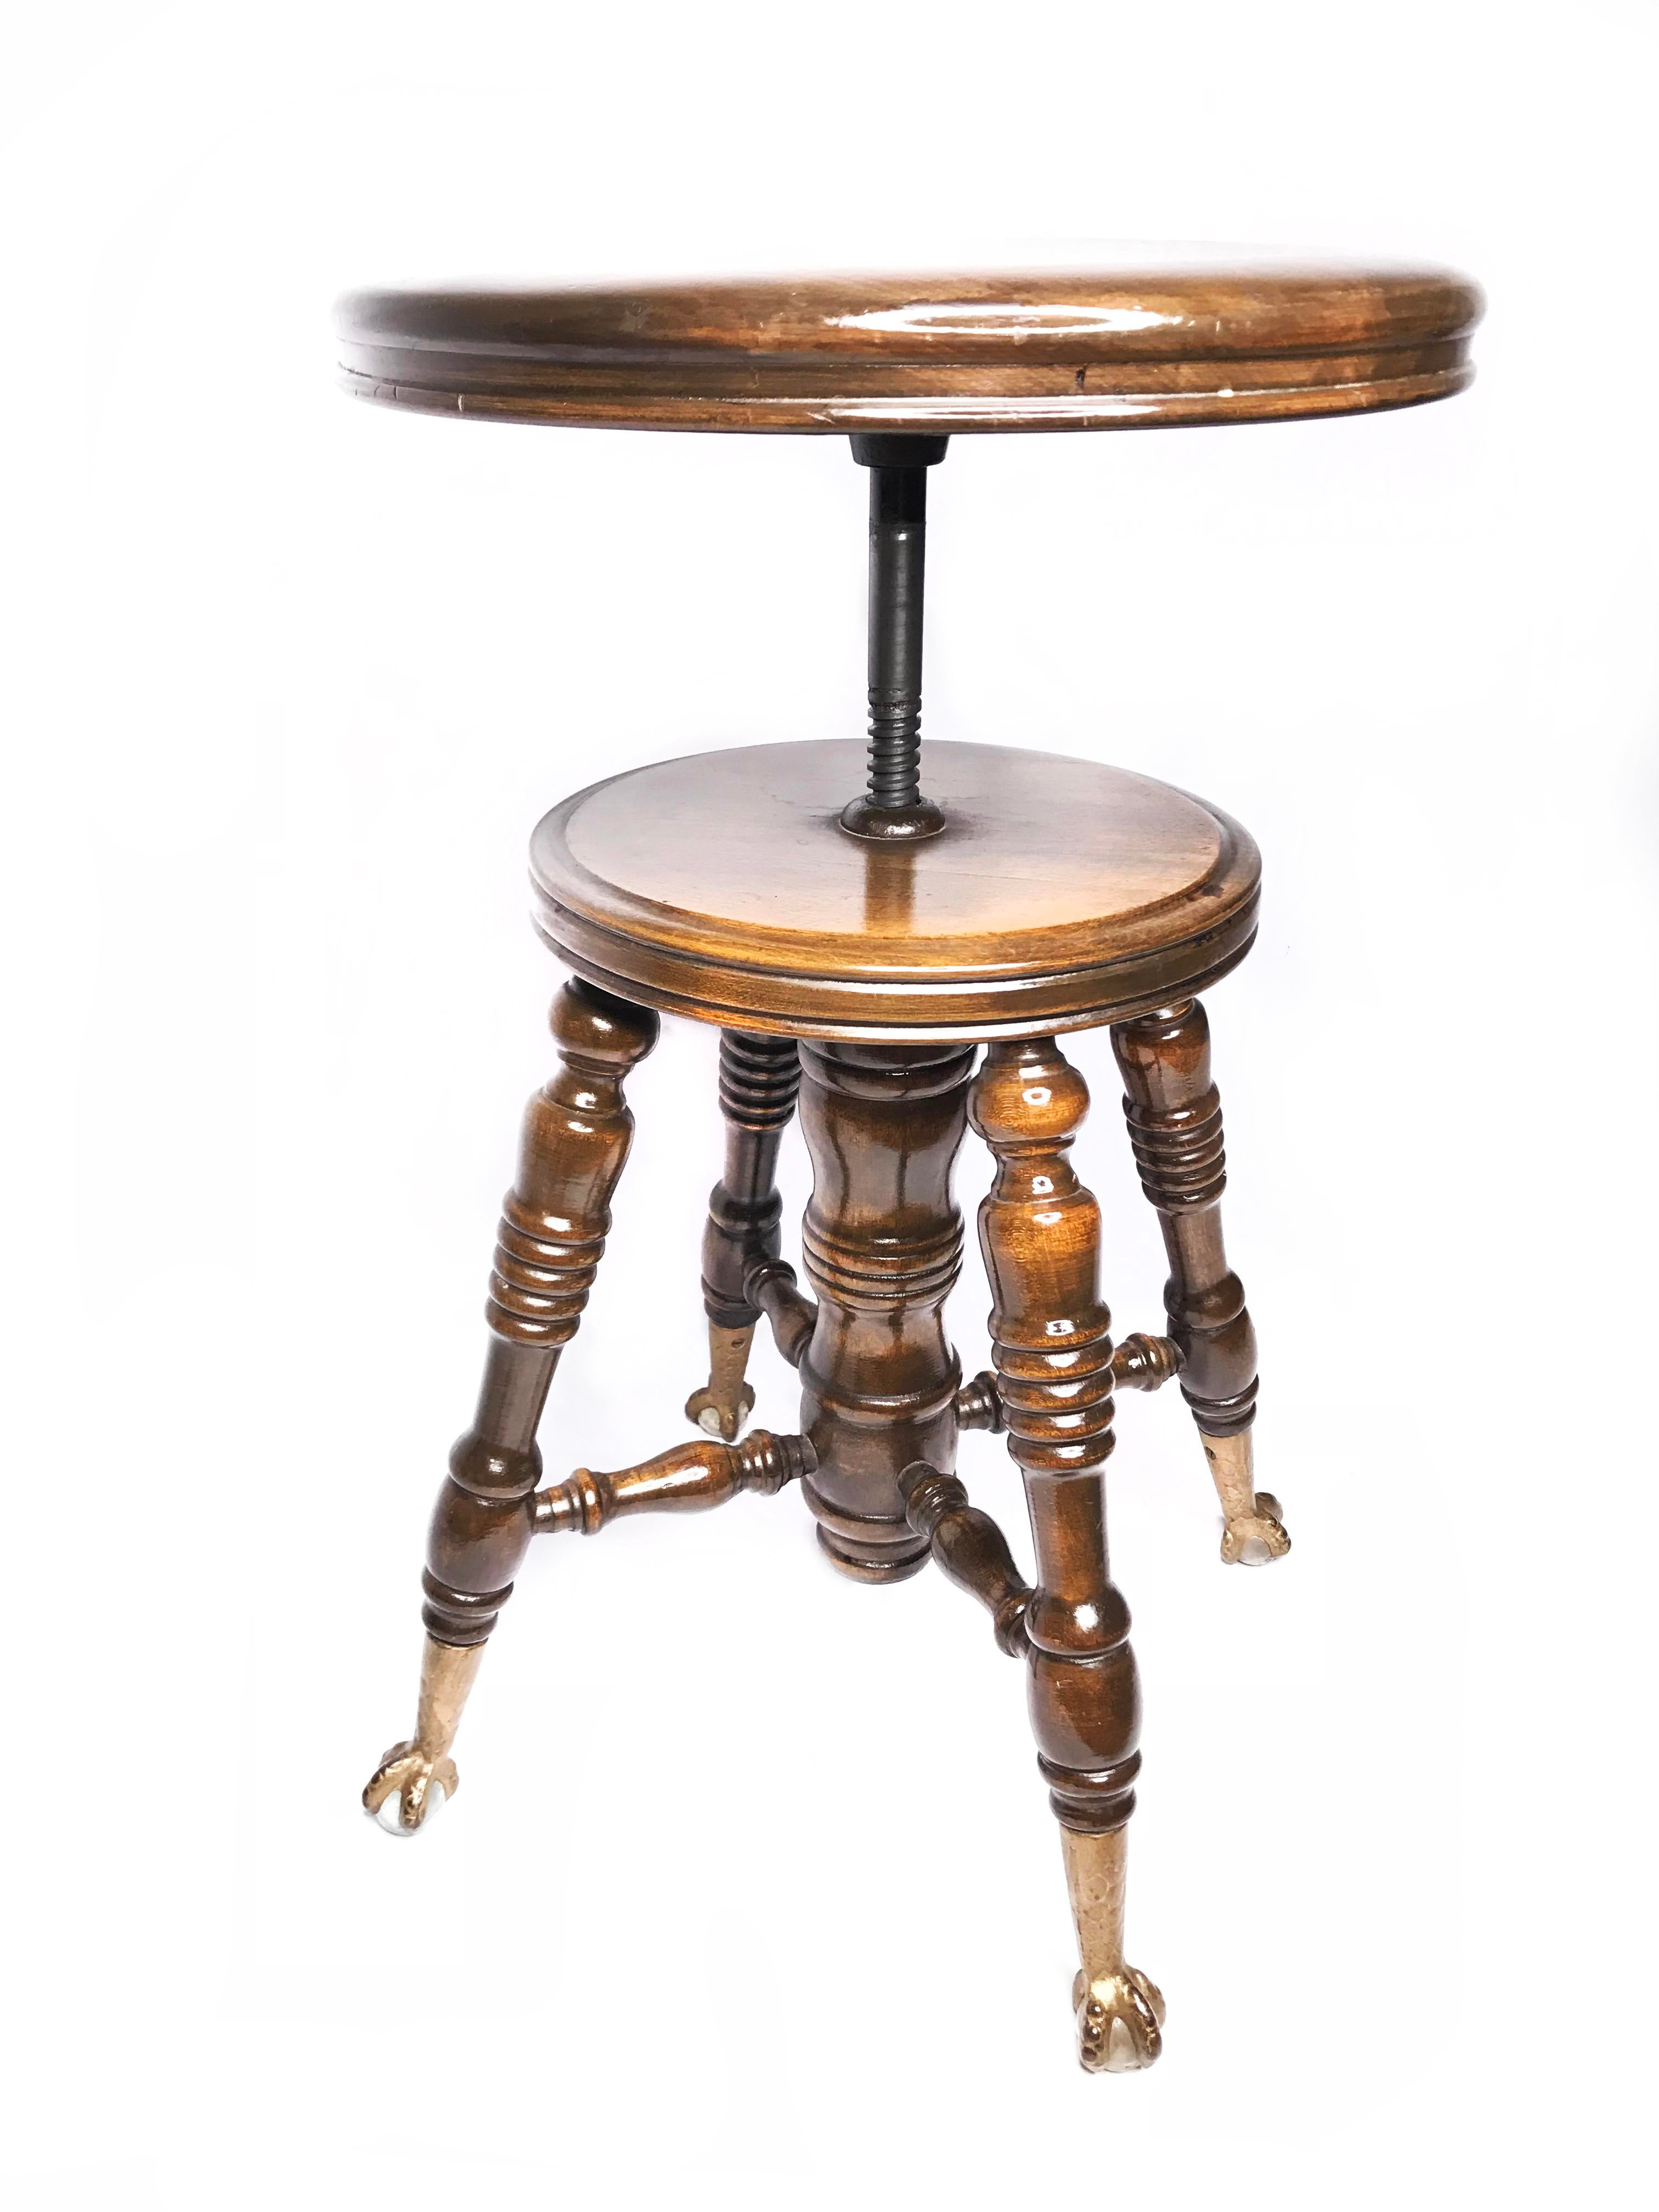 Art Deco 19th Century Art Deco Adjustable Oak Piano Stool With Claw Feet  For Sale